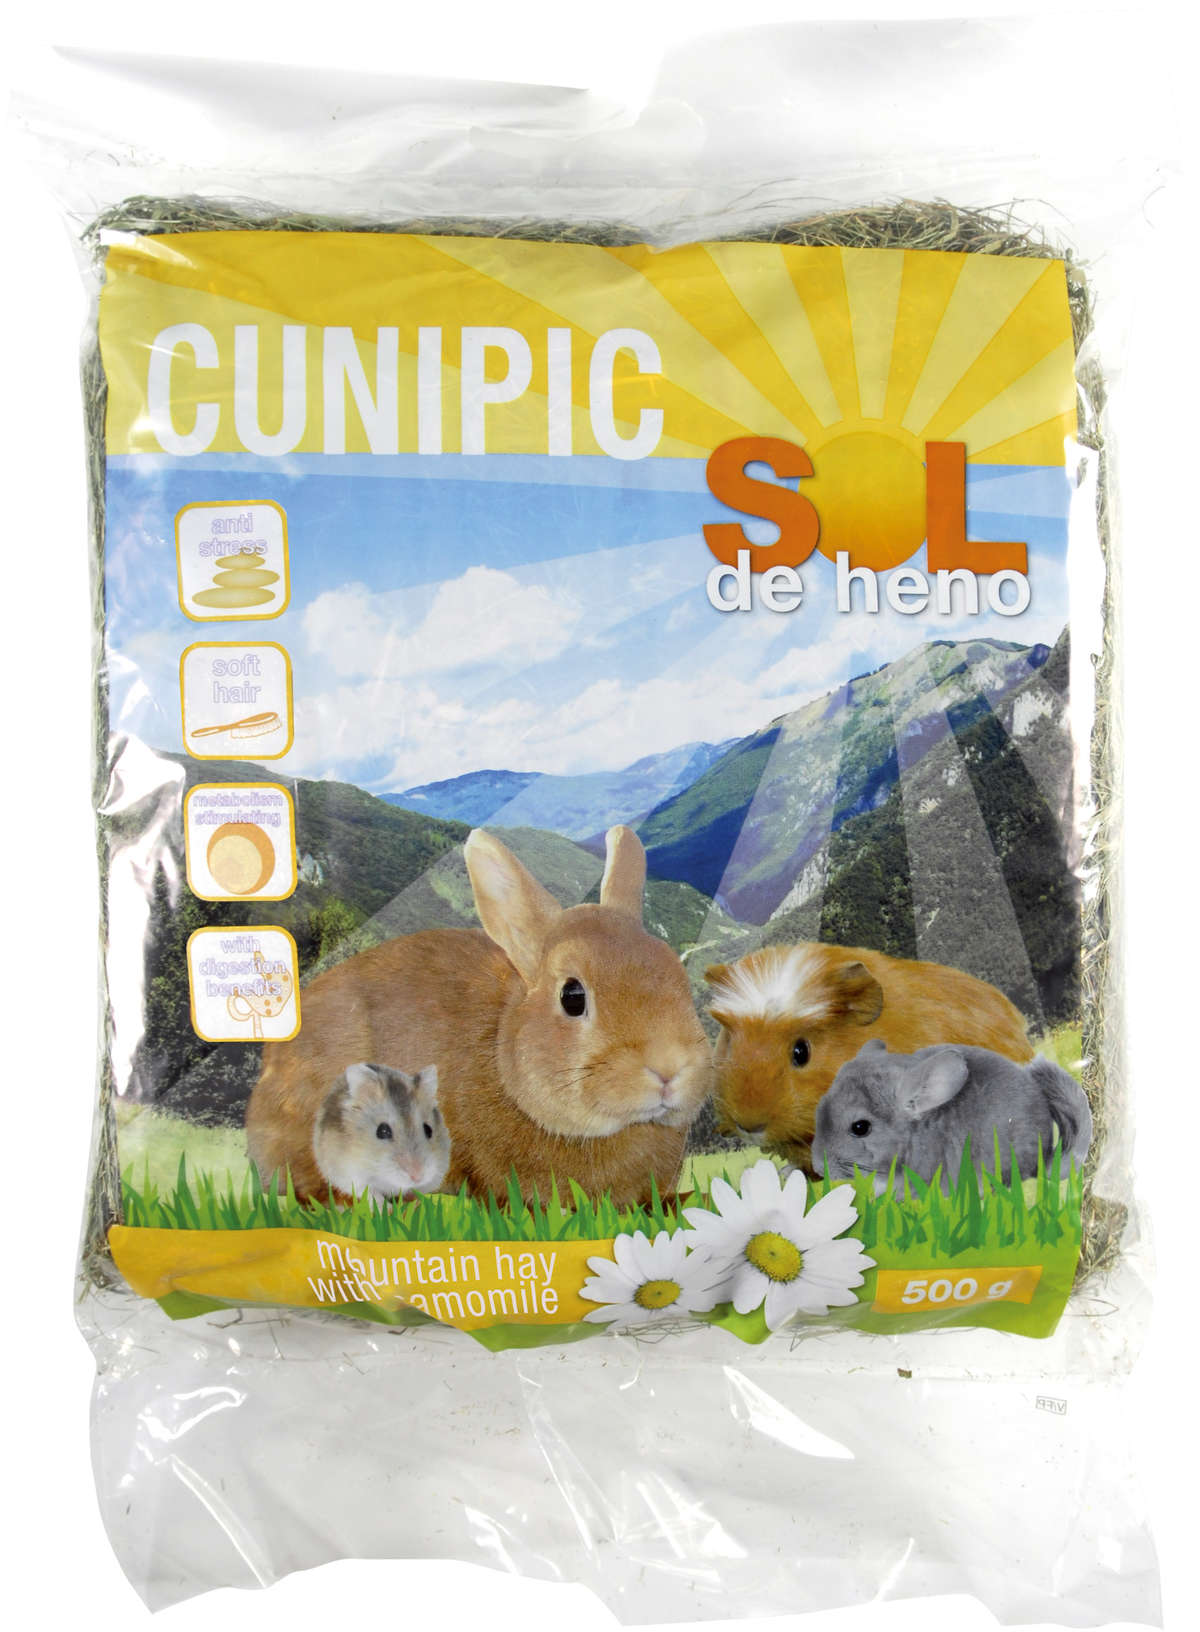 Cunipic Blossomhay (Mountain Hay) with Camomille